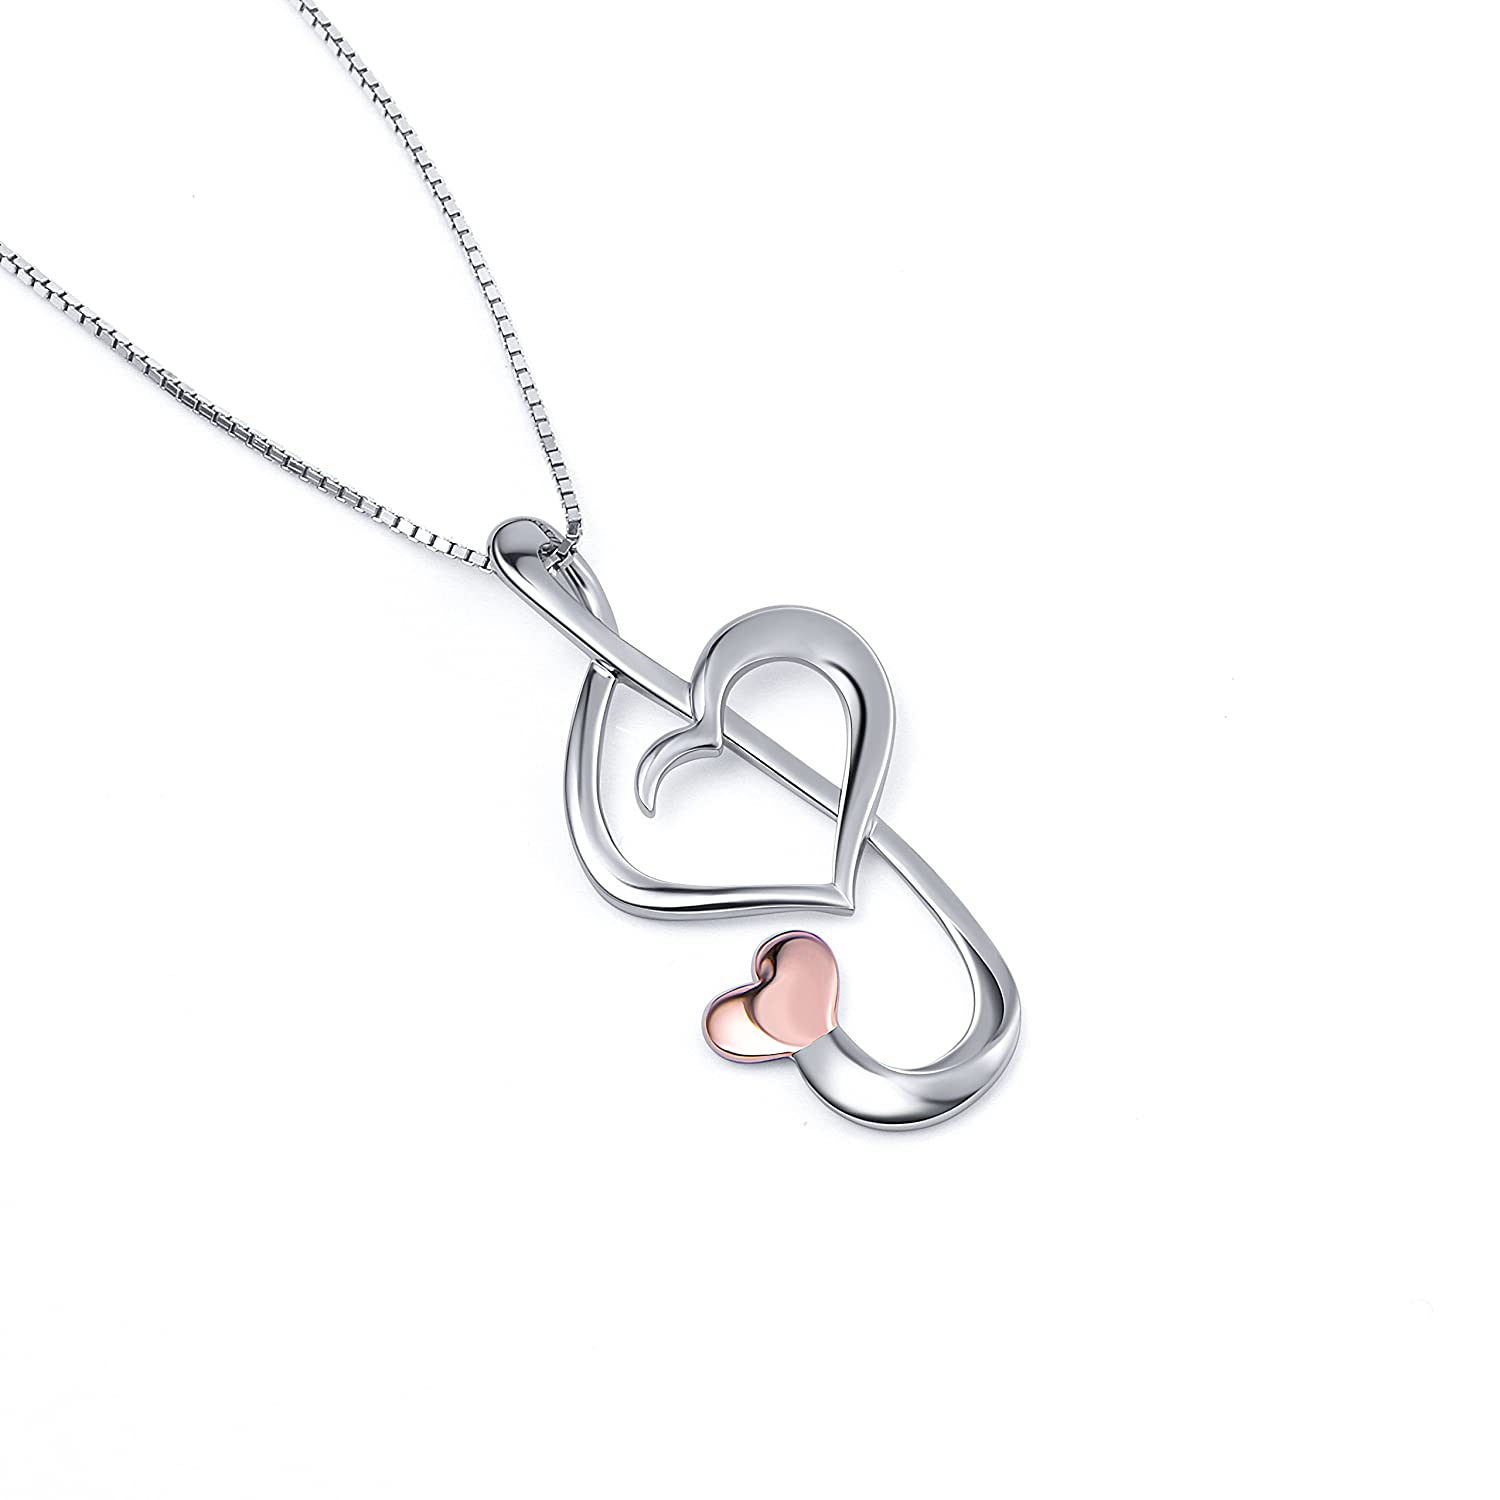 Box Chain 18 inches S925 Sterling Silver Musical Note Pendant Necklace